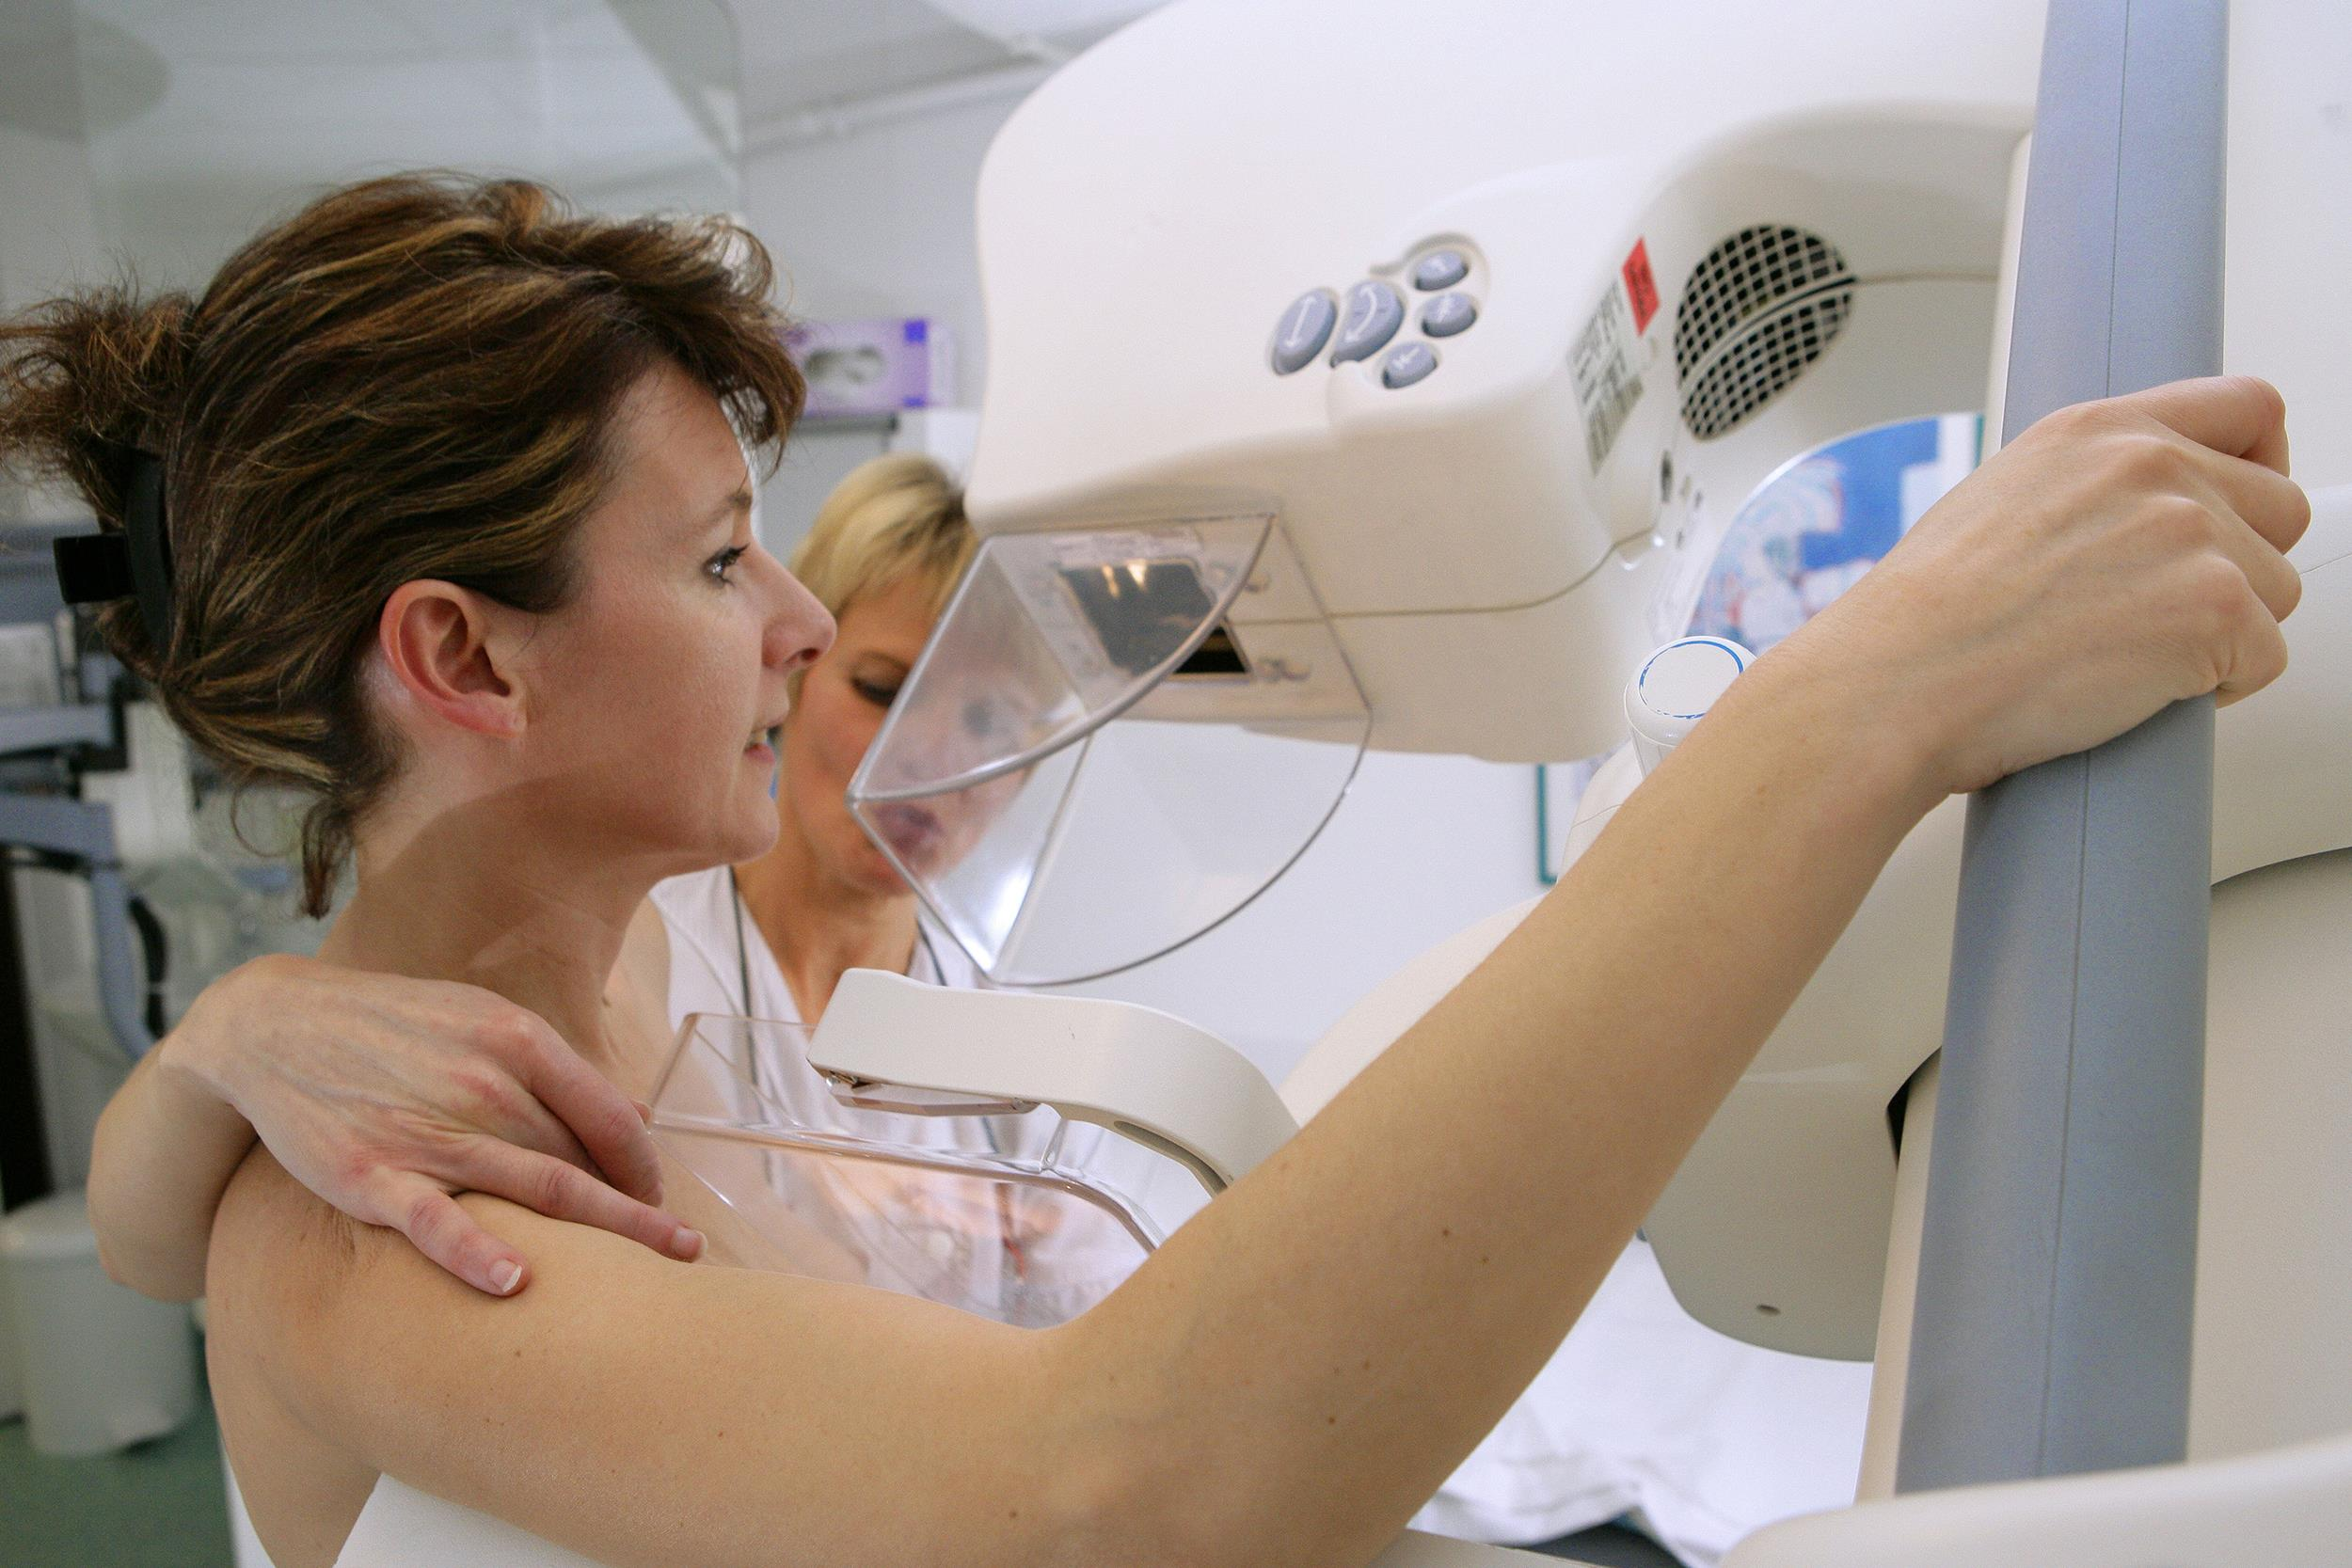 Image: Mammography examination at Rouen university hospital, France.